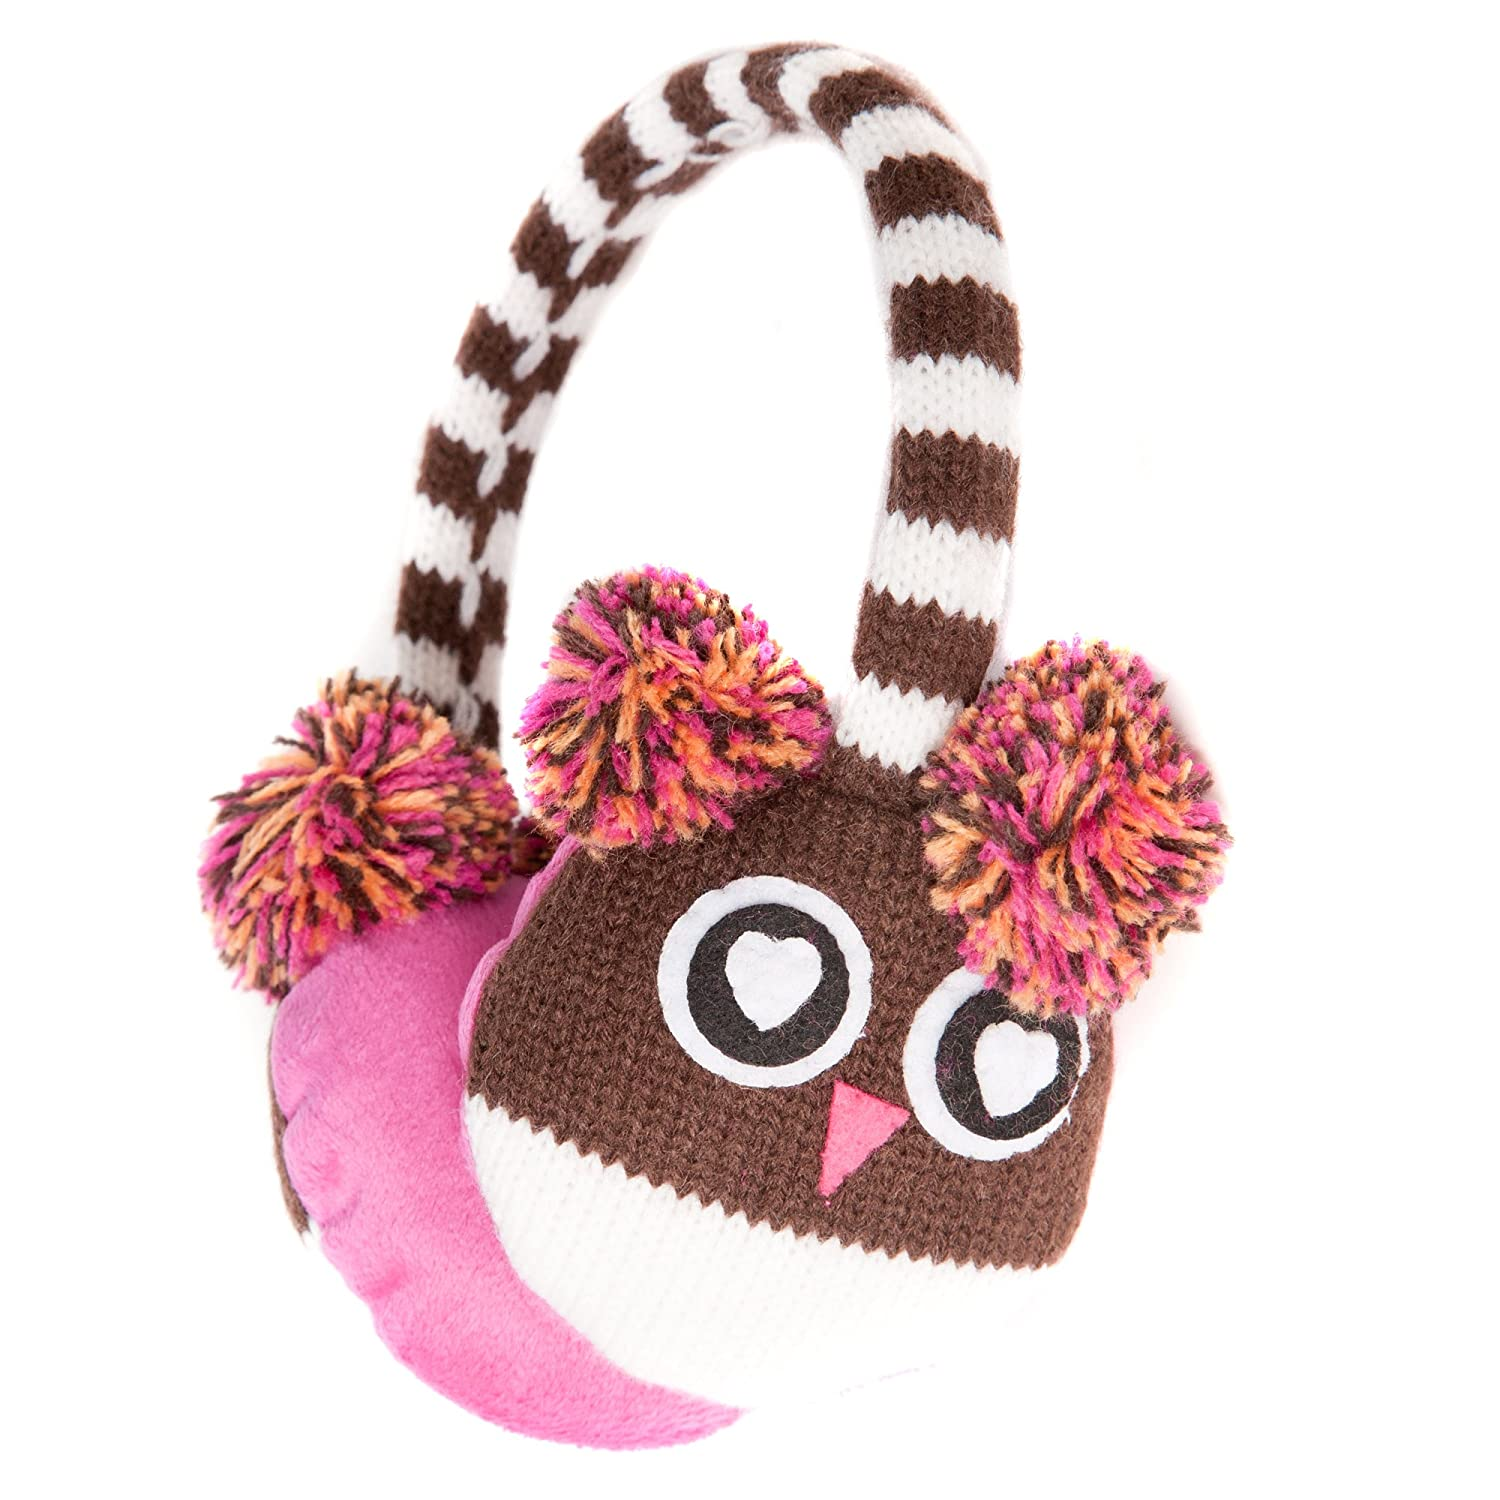 Cute Brown Owl Style Winter Thermal Fashion Earmuffs with Pompom Ears - Onesize fits most